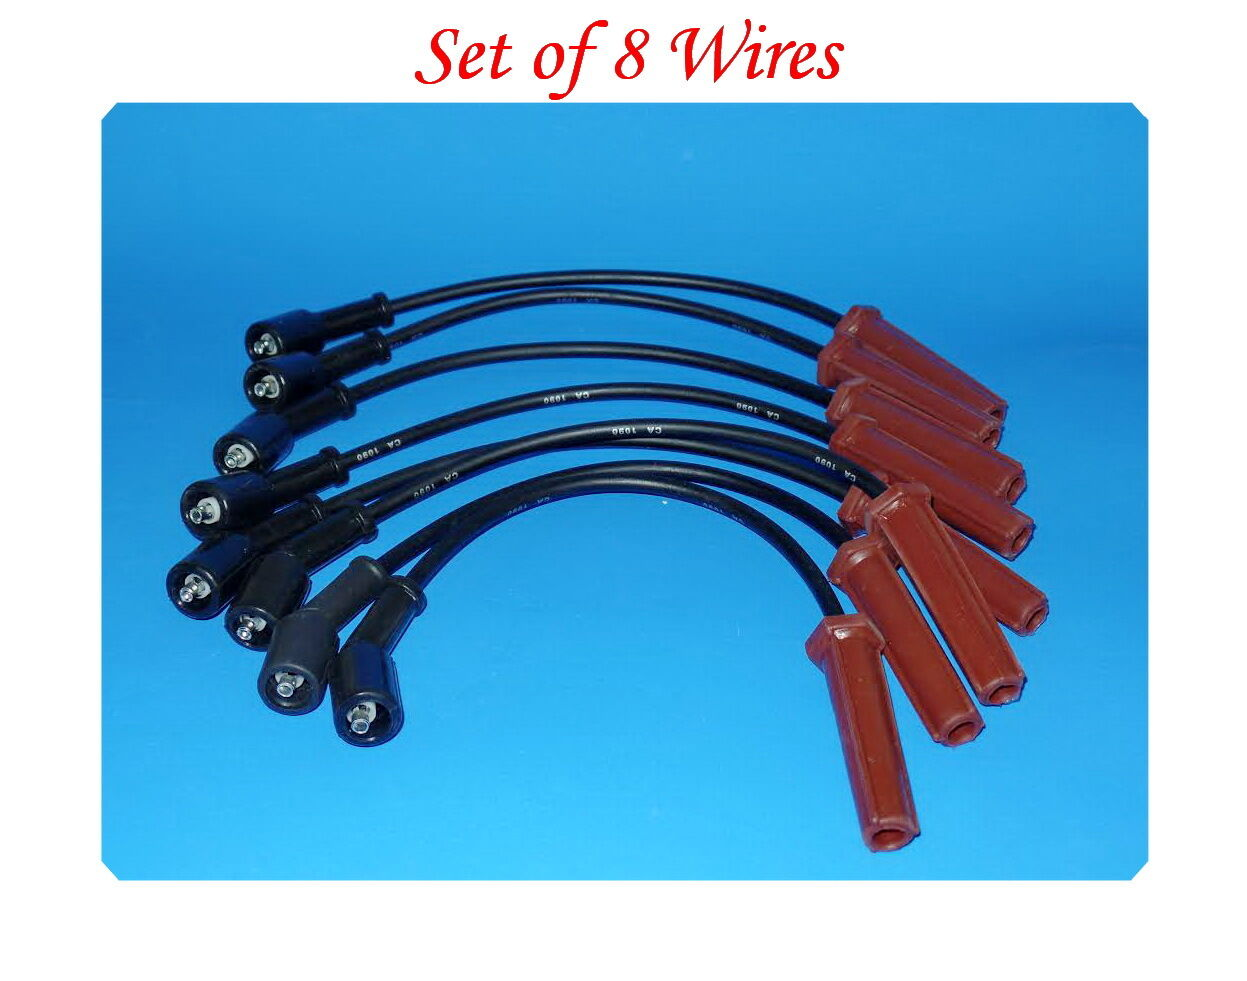 Spark Plug Wire Set 8 Wires For Buick Cadillac Chevrolet GMC Hummer Pontiac Saab